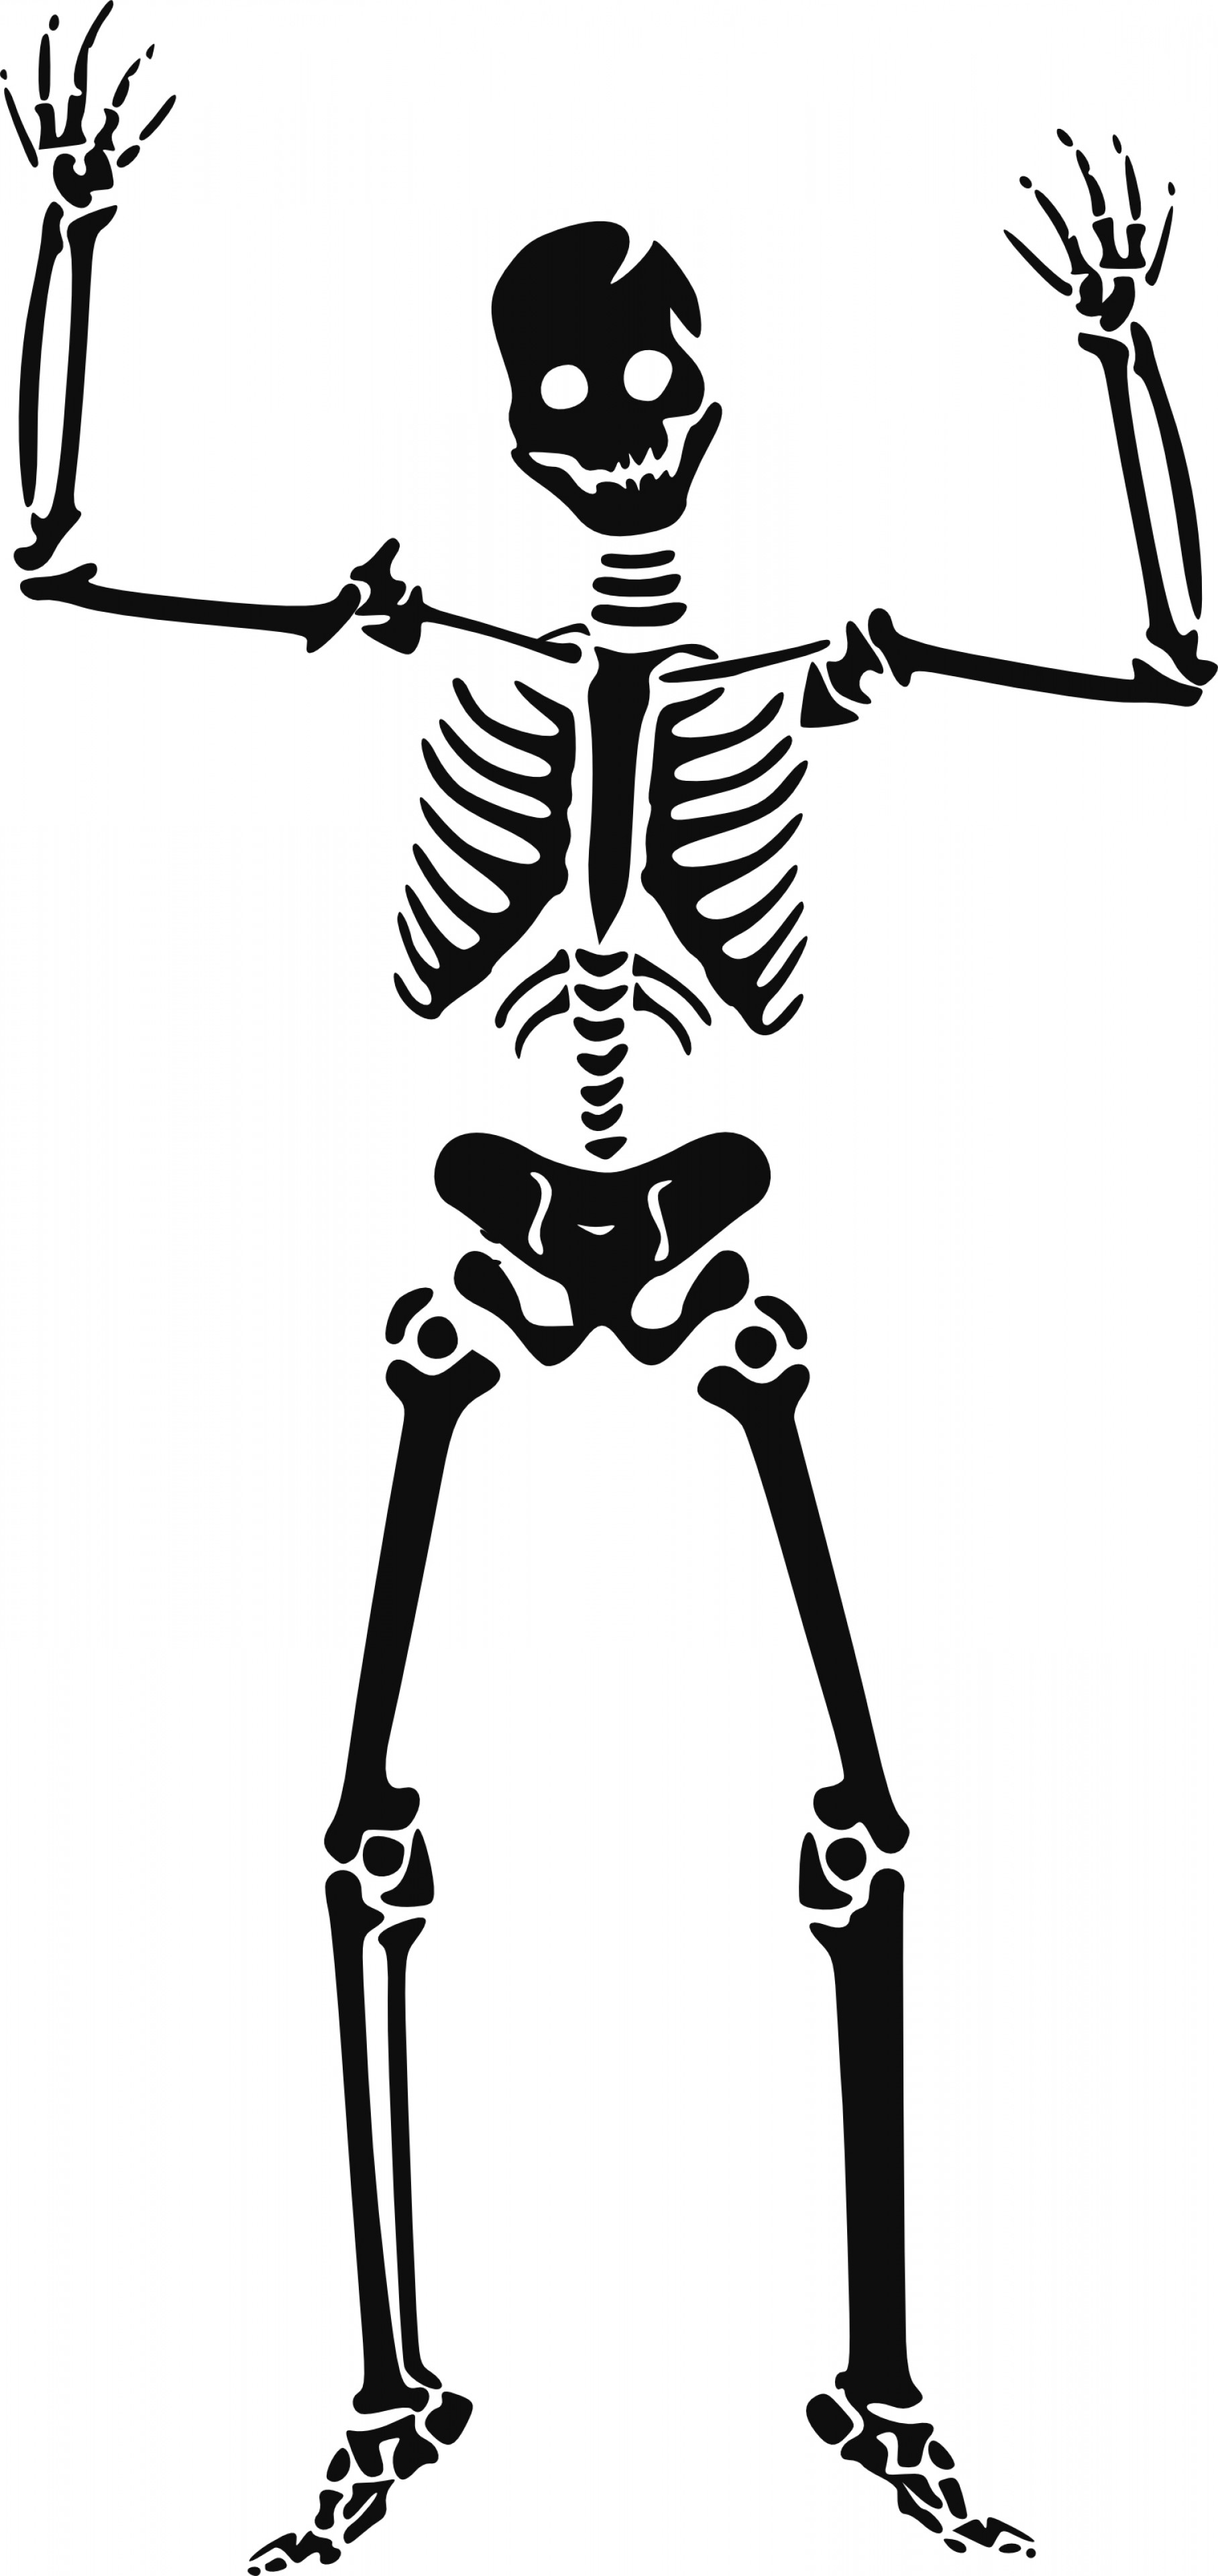 Headless Scary Halloween Skeletons Vectors: Happy Skeleton Free Halloween Vector Clipart Illustration